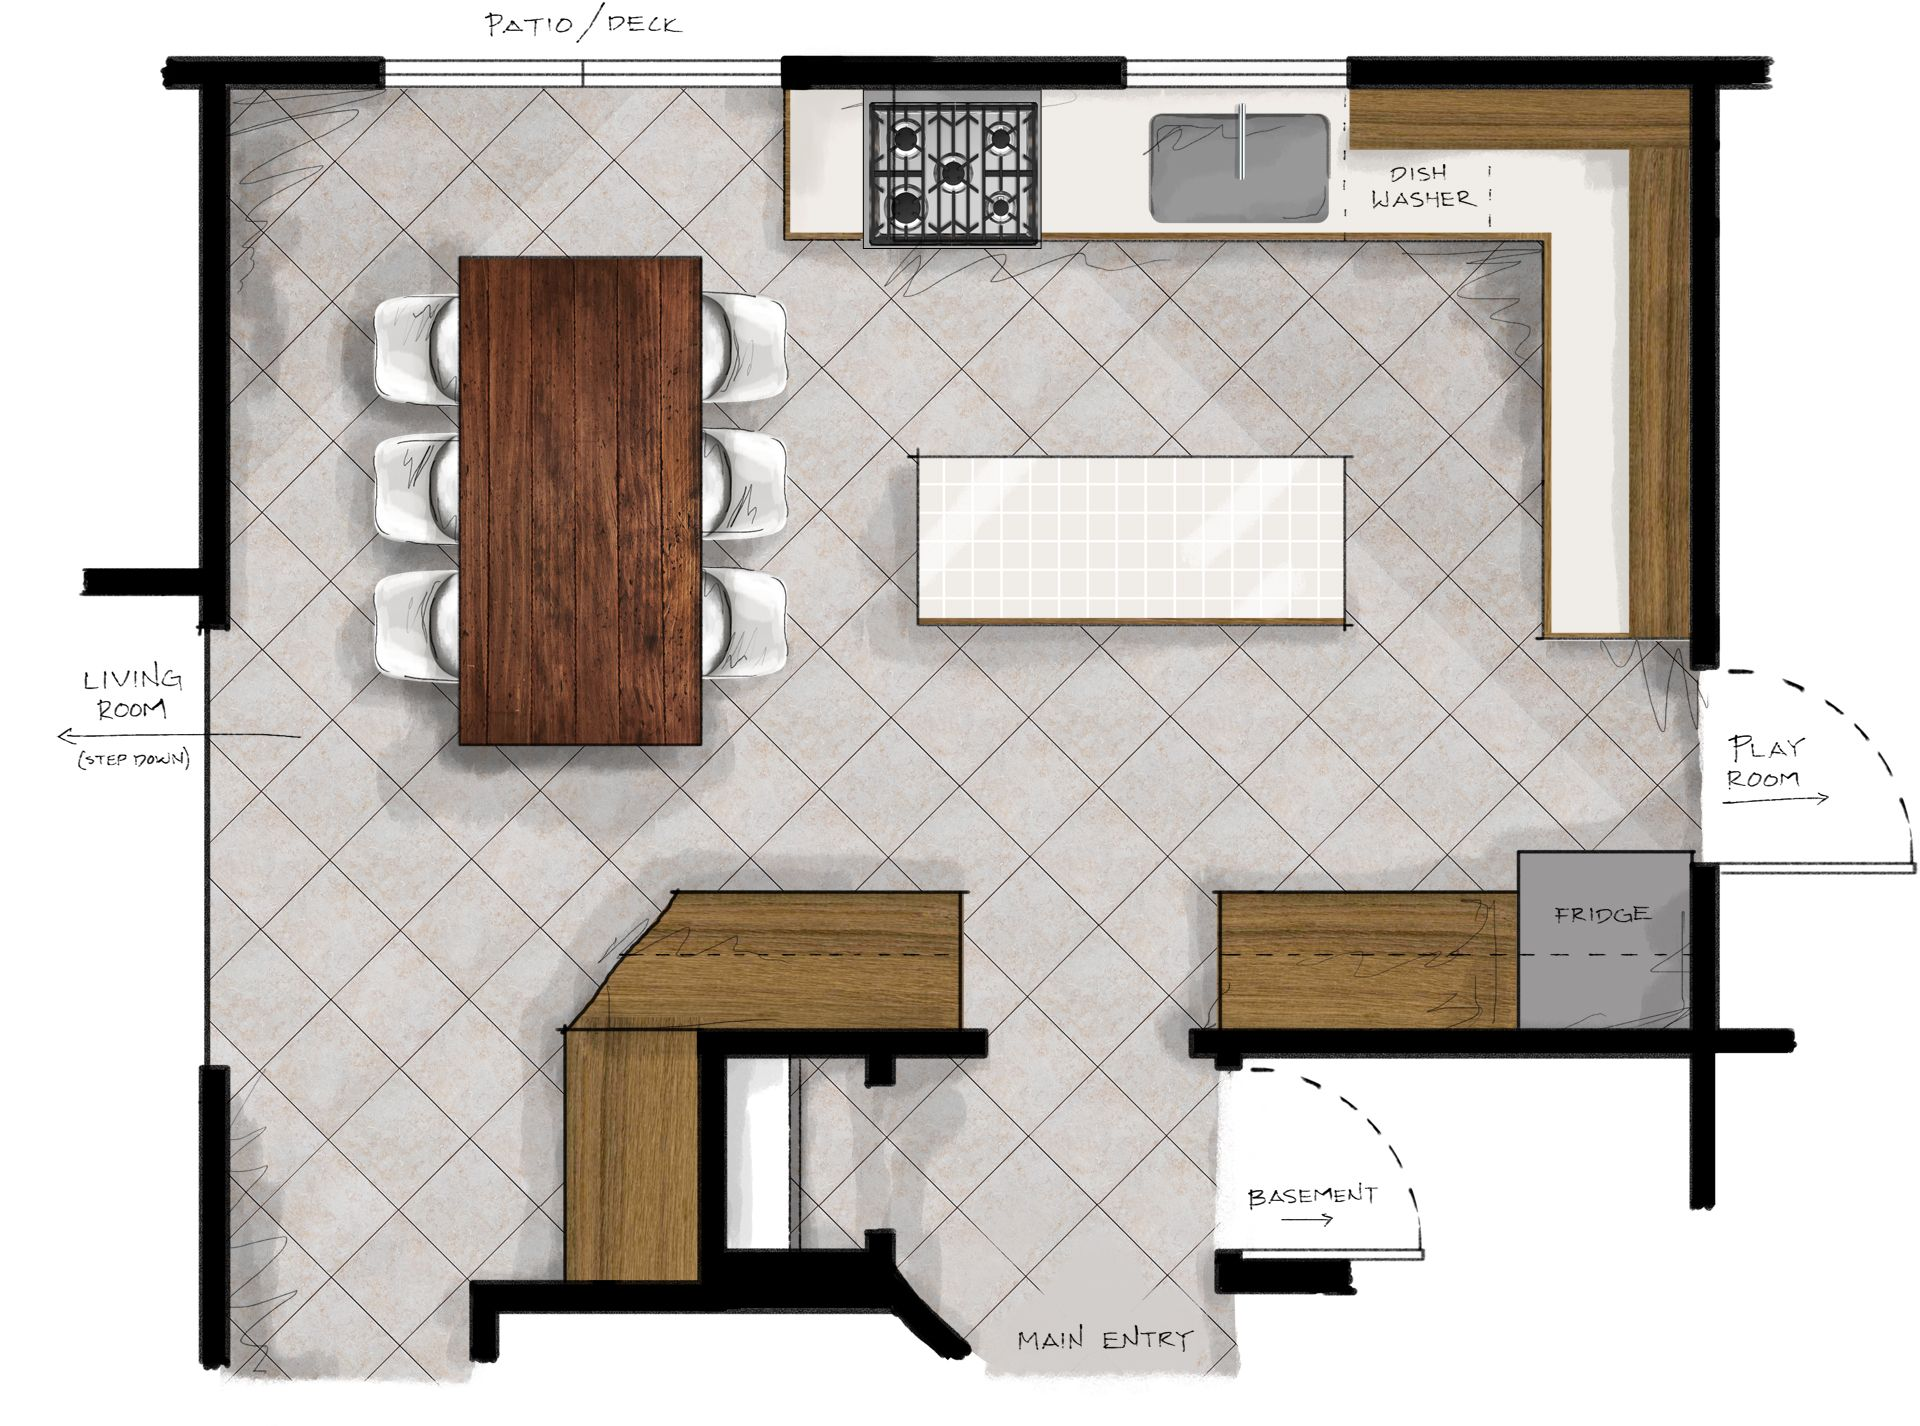 New Kitchen Plans Making Nice In The Midwest Kitchen Plans Industrial Kitchen Design New Kitchen